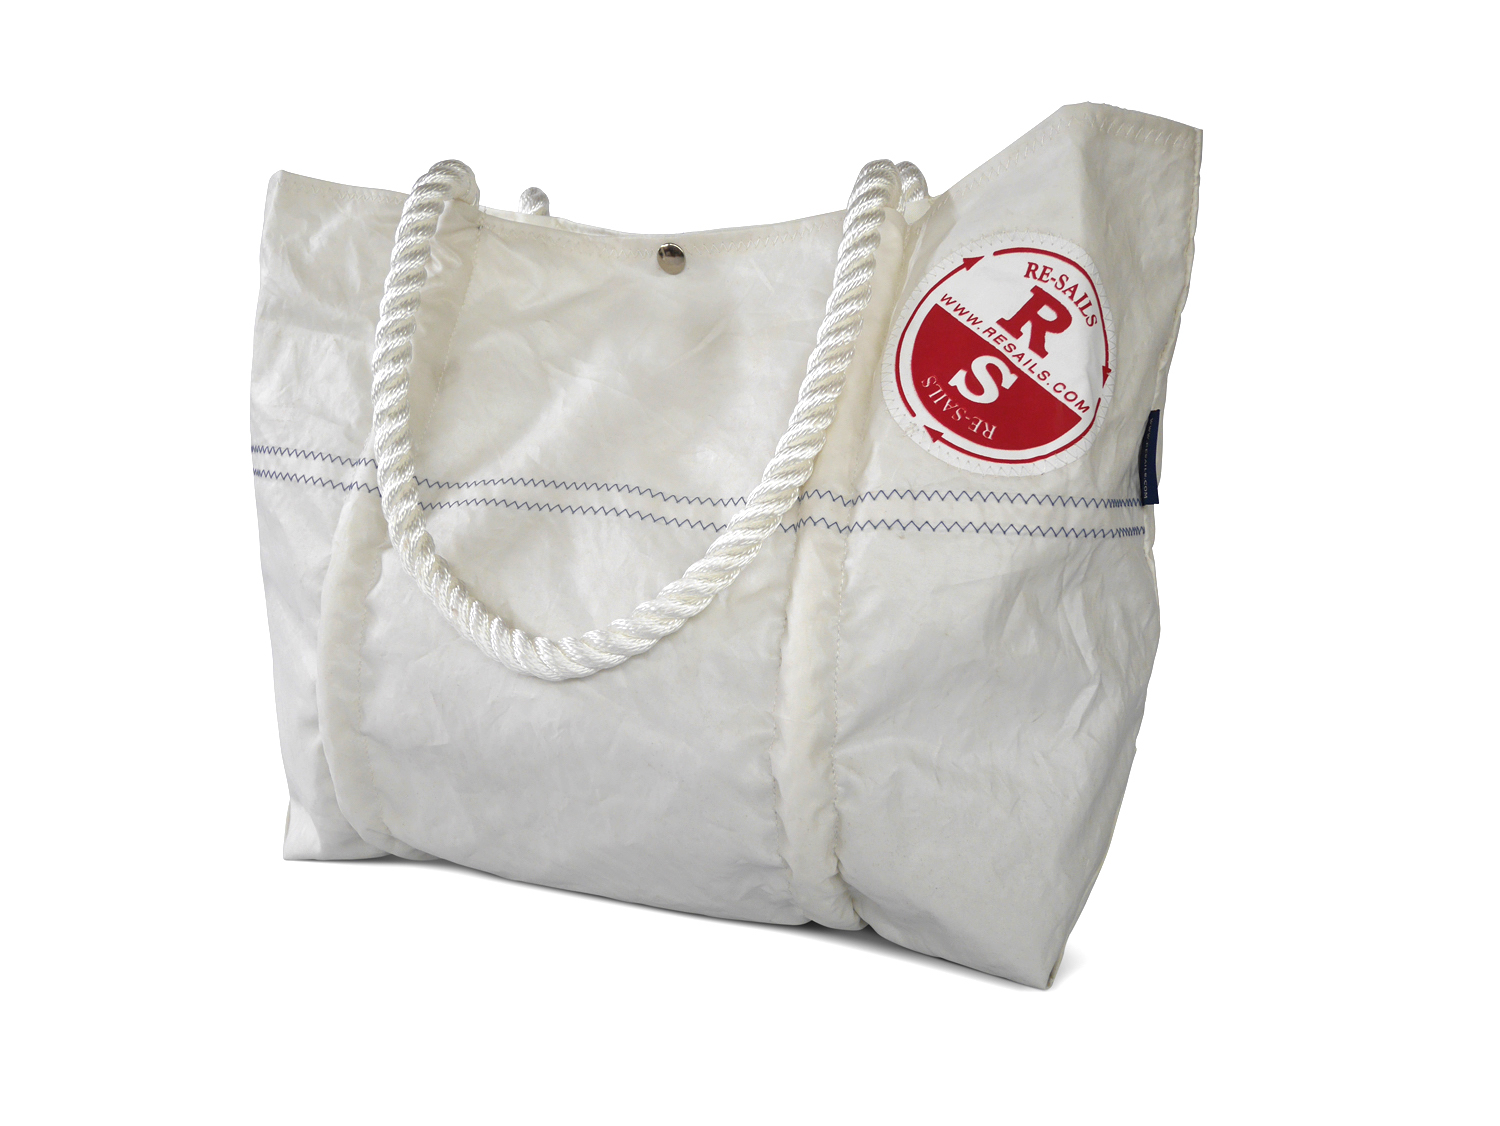 All Sail Insignia Rope Tote Resails